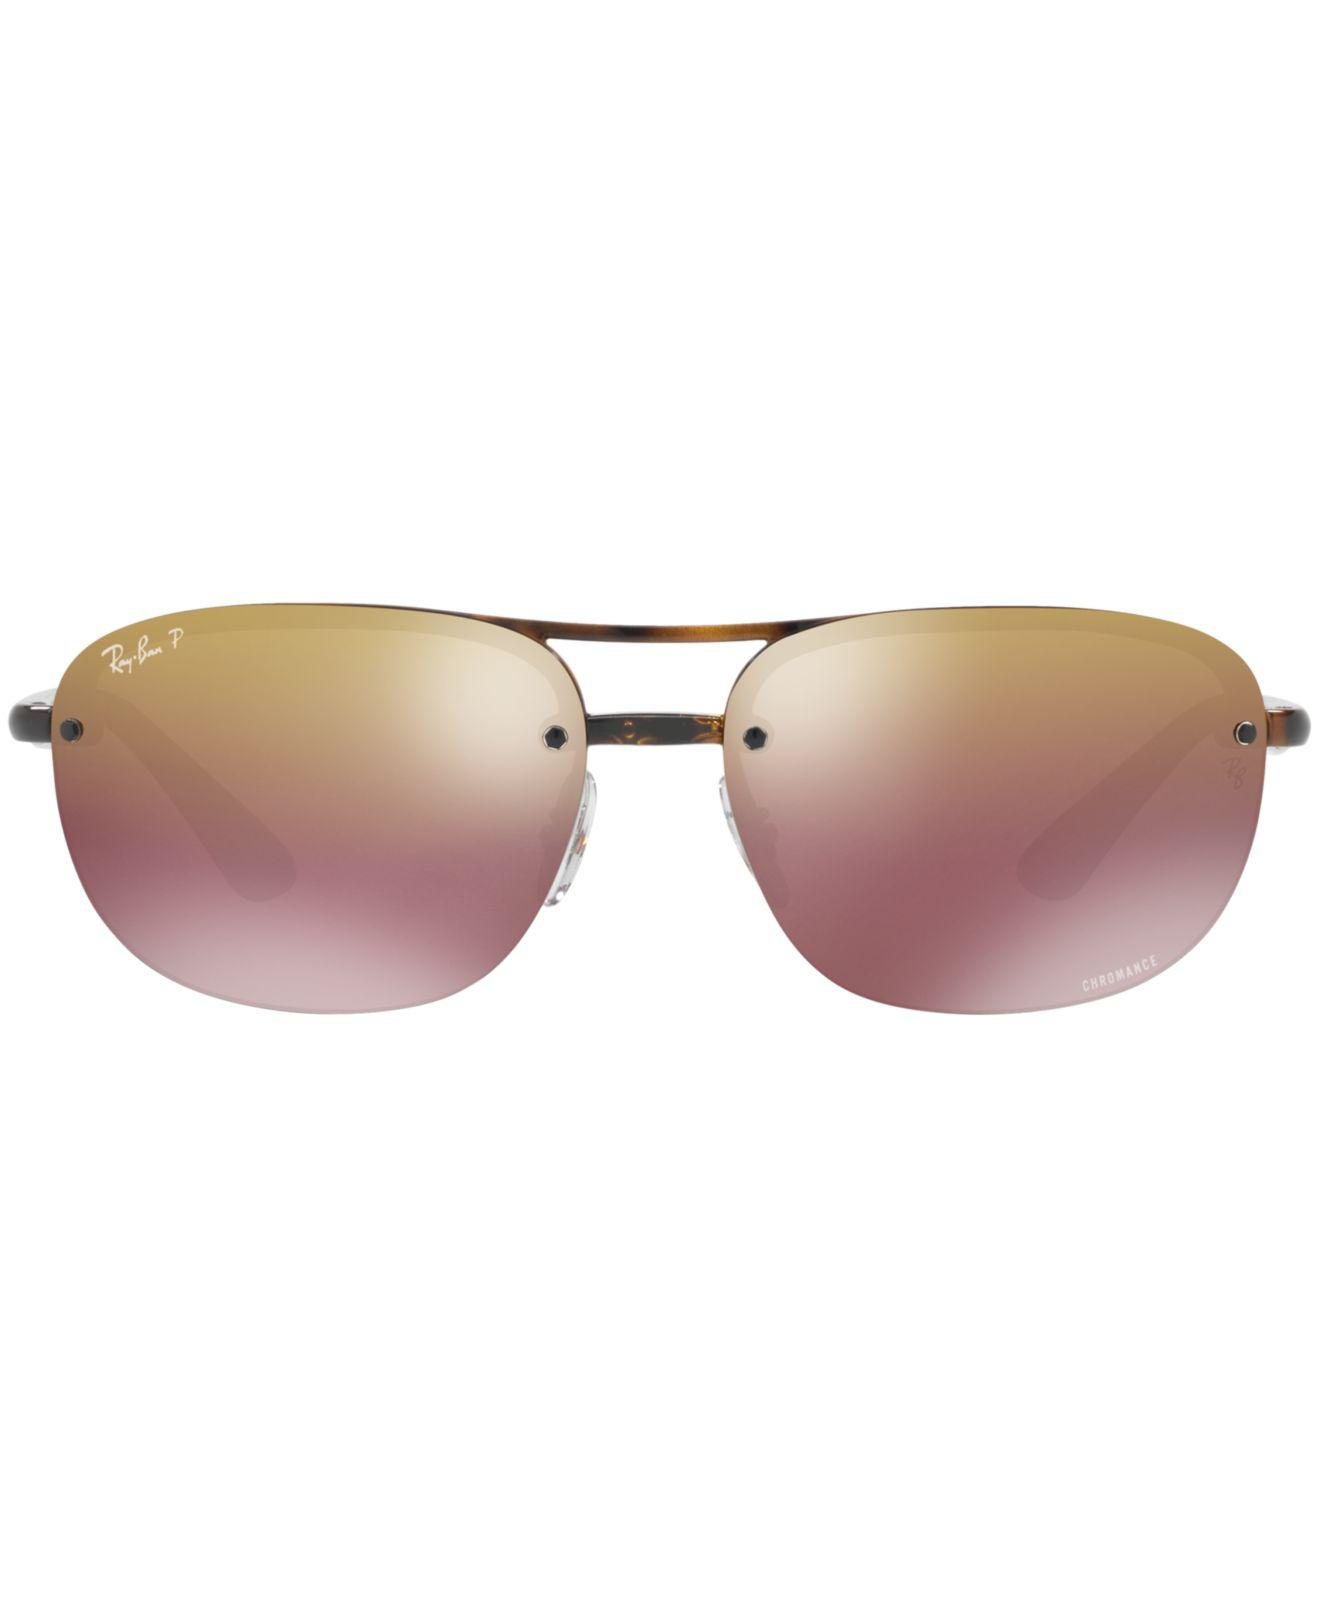 89685324498 Lyst - Ray-Ban Polarized Chromance Collection Sunglasses